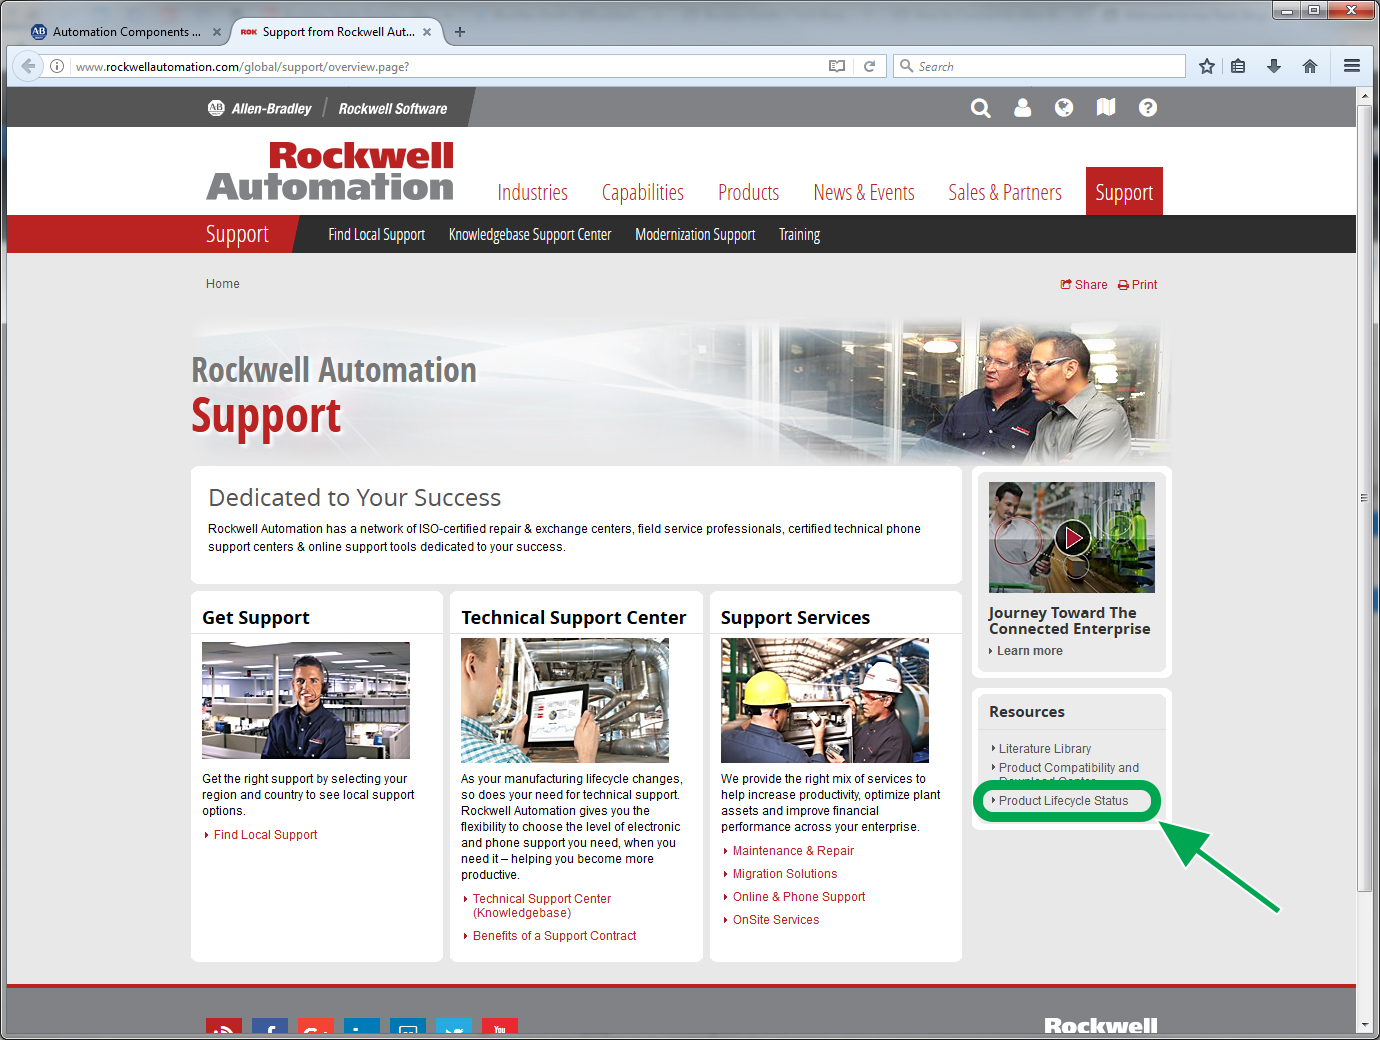 On the Rockwell Automation Support page, click on Product Lifecycle Status